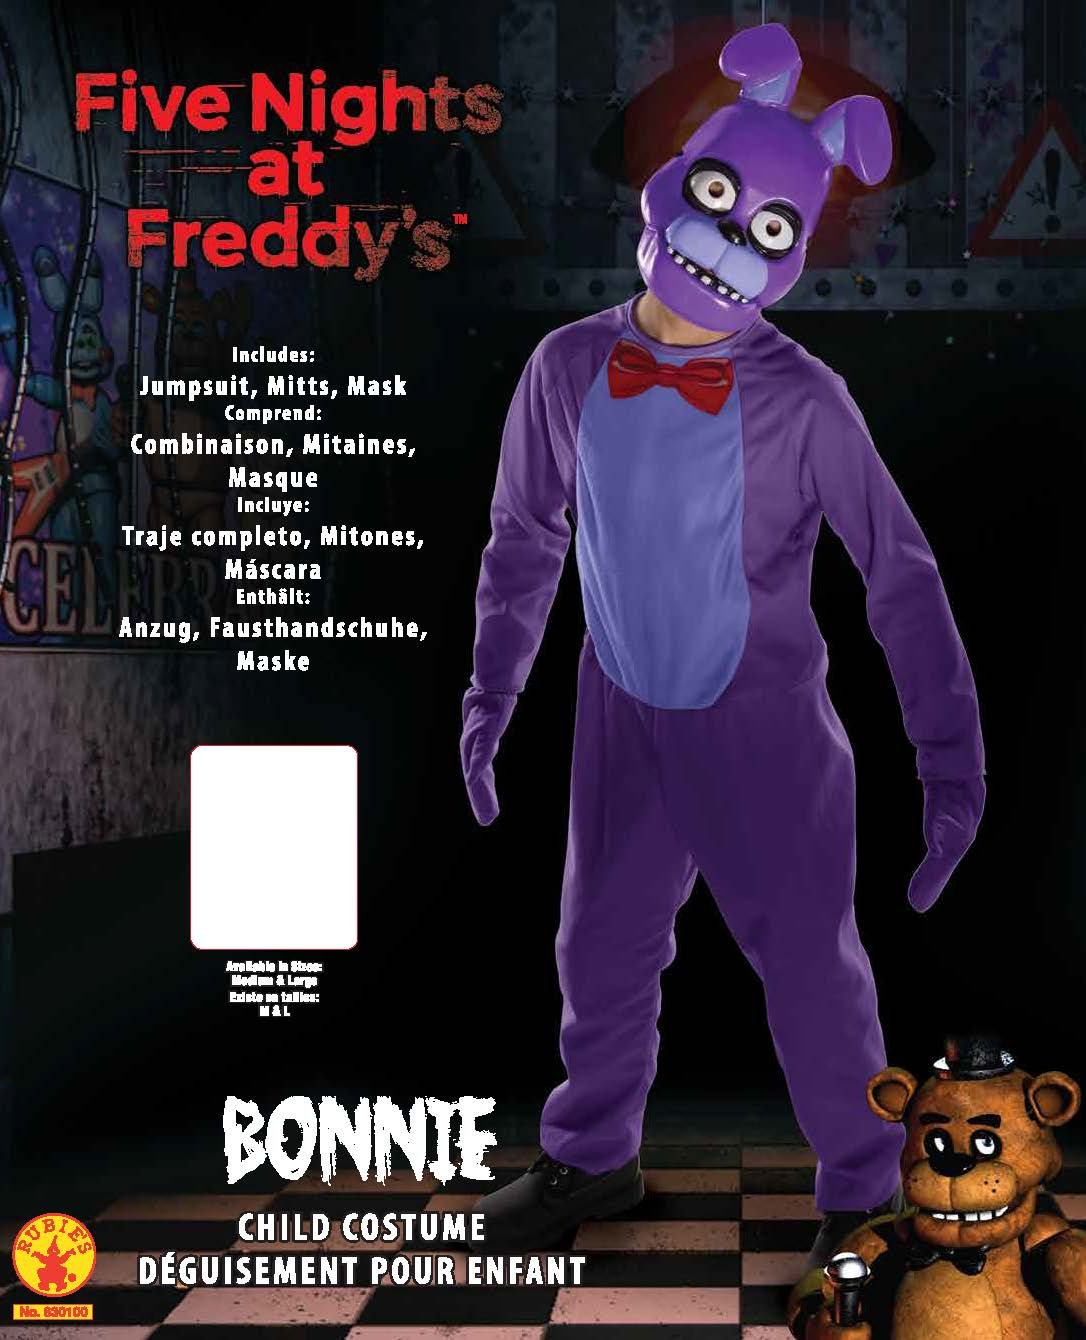 amazoncom rubies five nights childs value priced at freddys bonnie costume large toys games